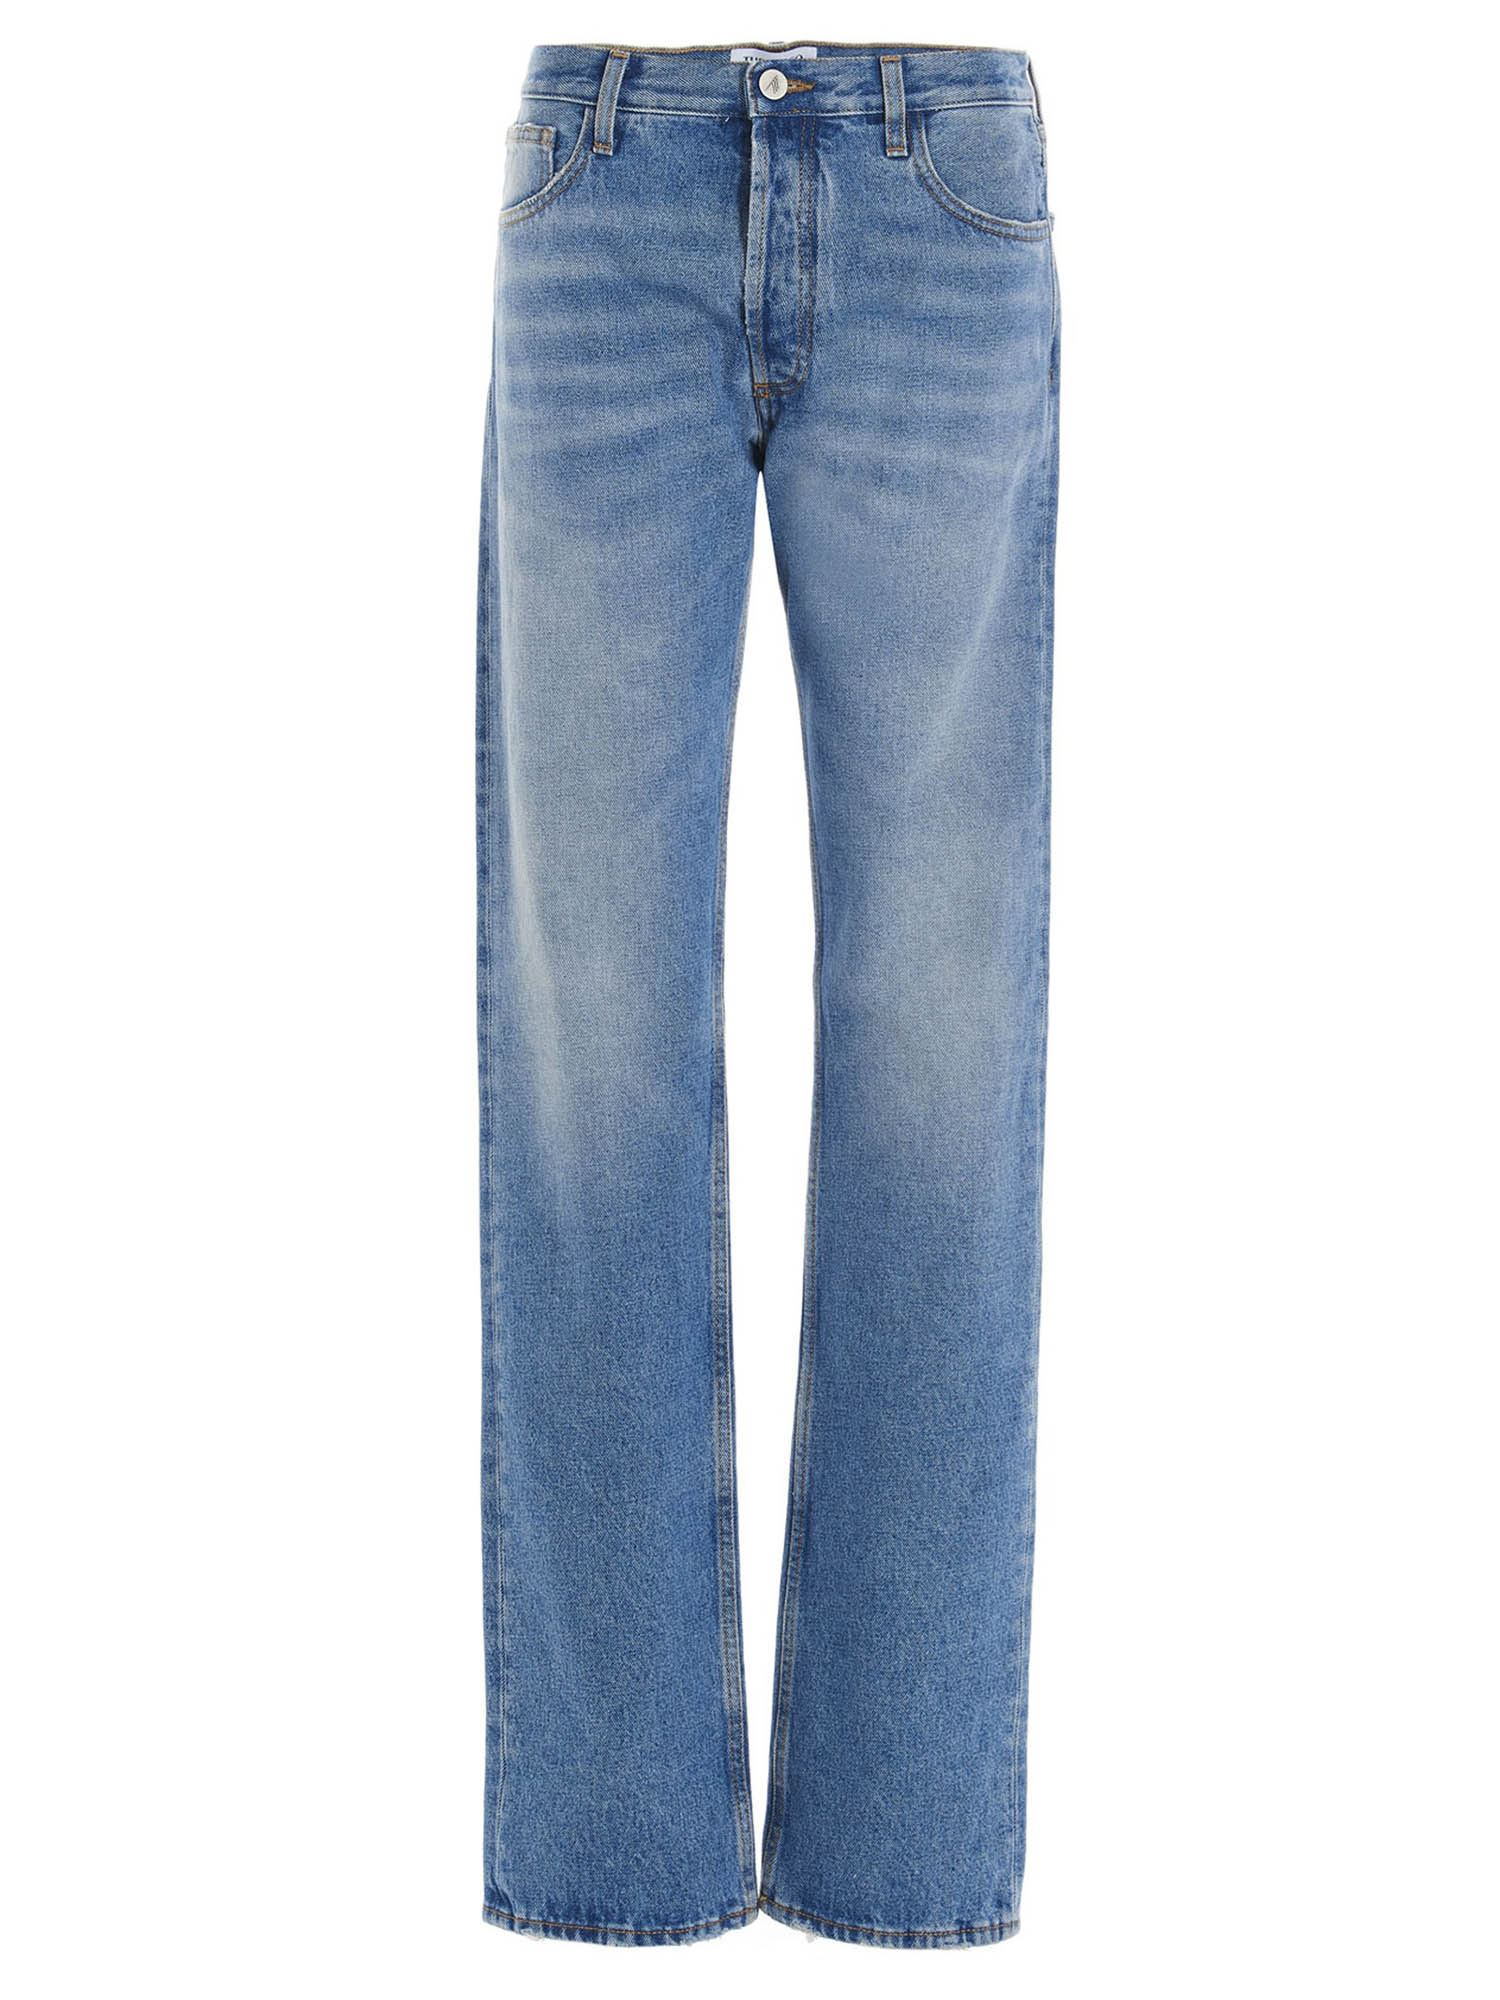 Attico SUPER WASHED JEANS IN LIGHT BLUE